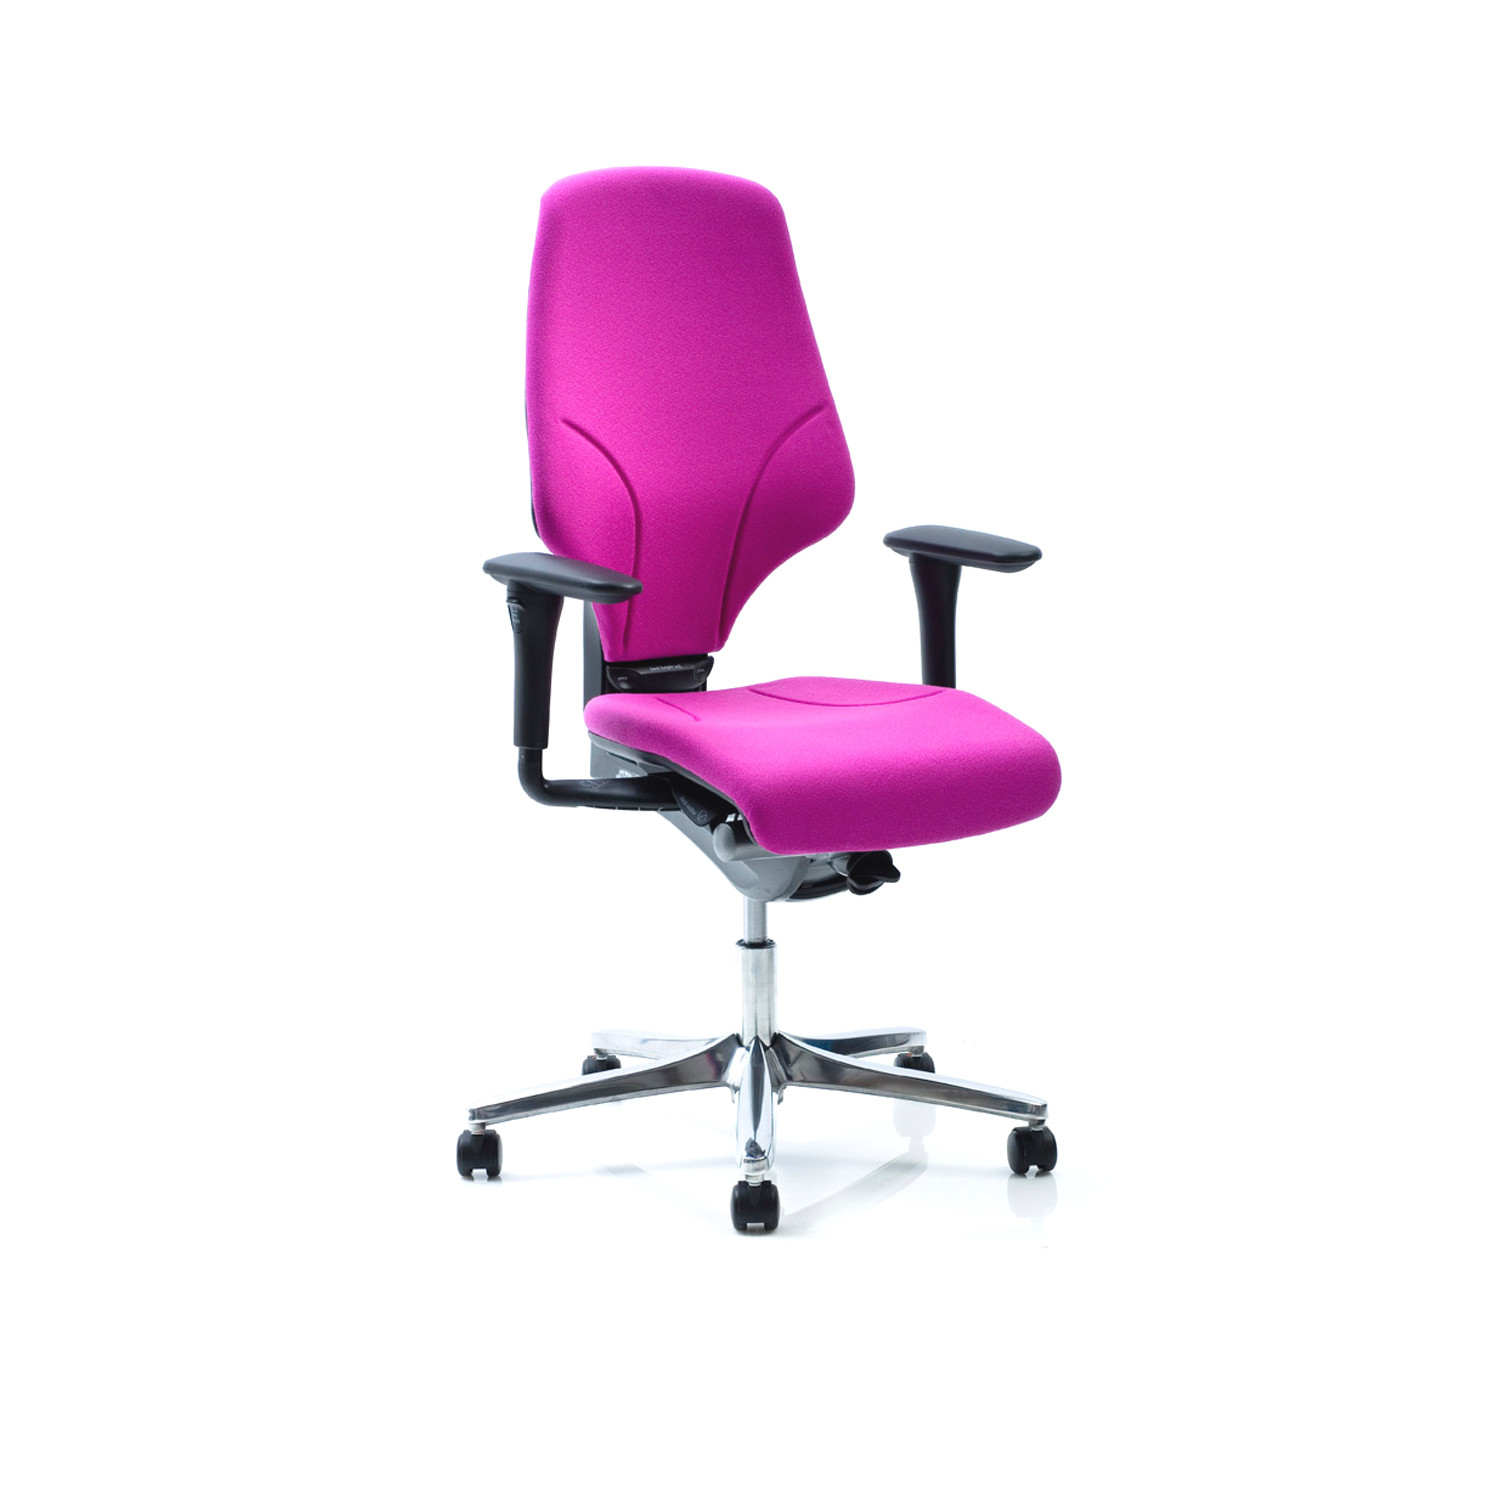 Giroflex G64 Office Chairs by Orangebox